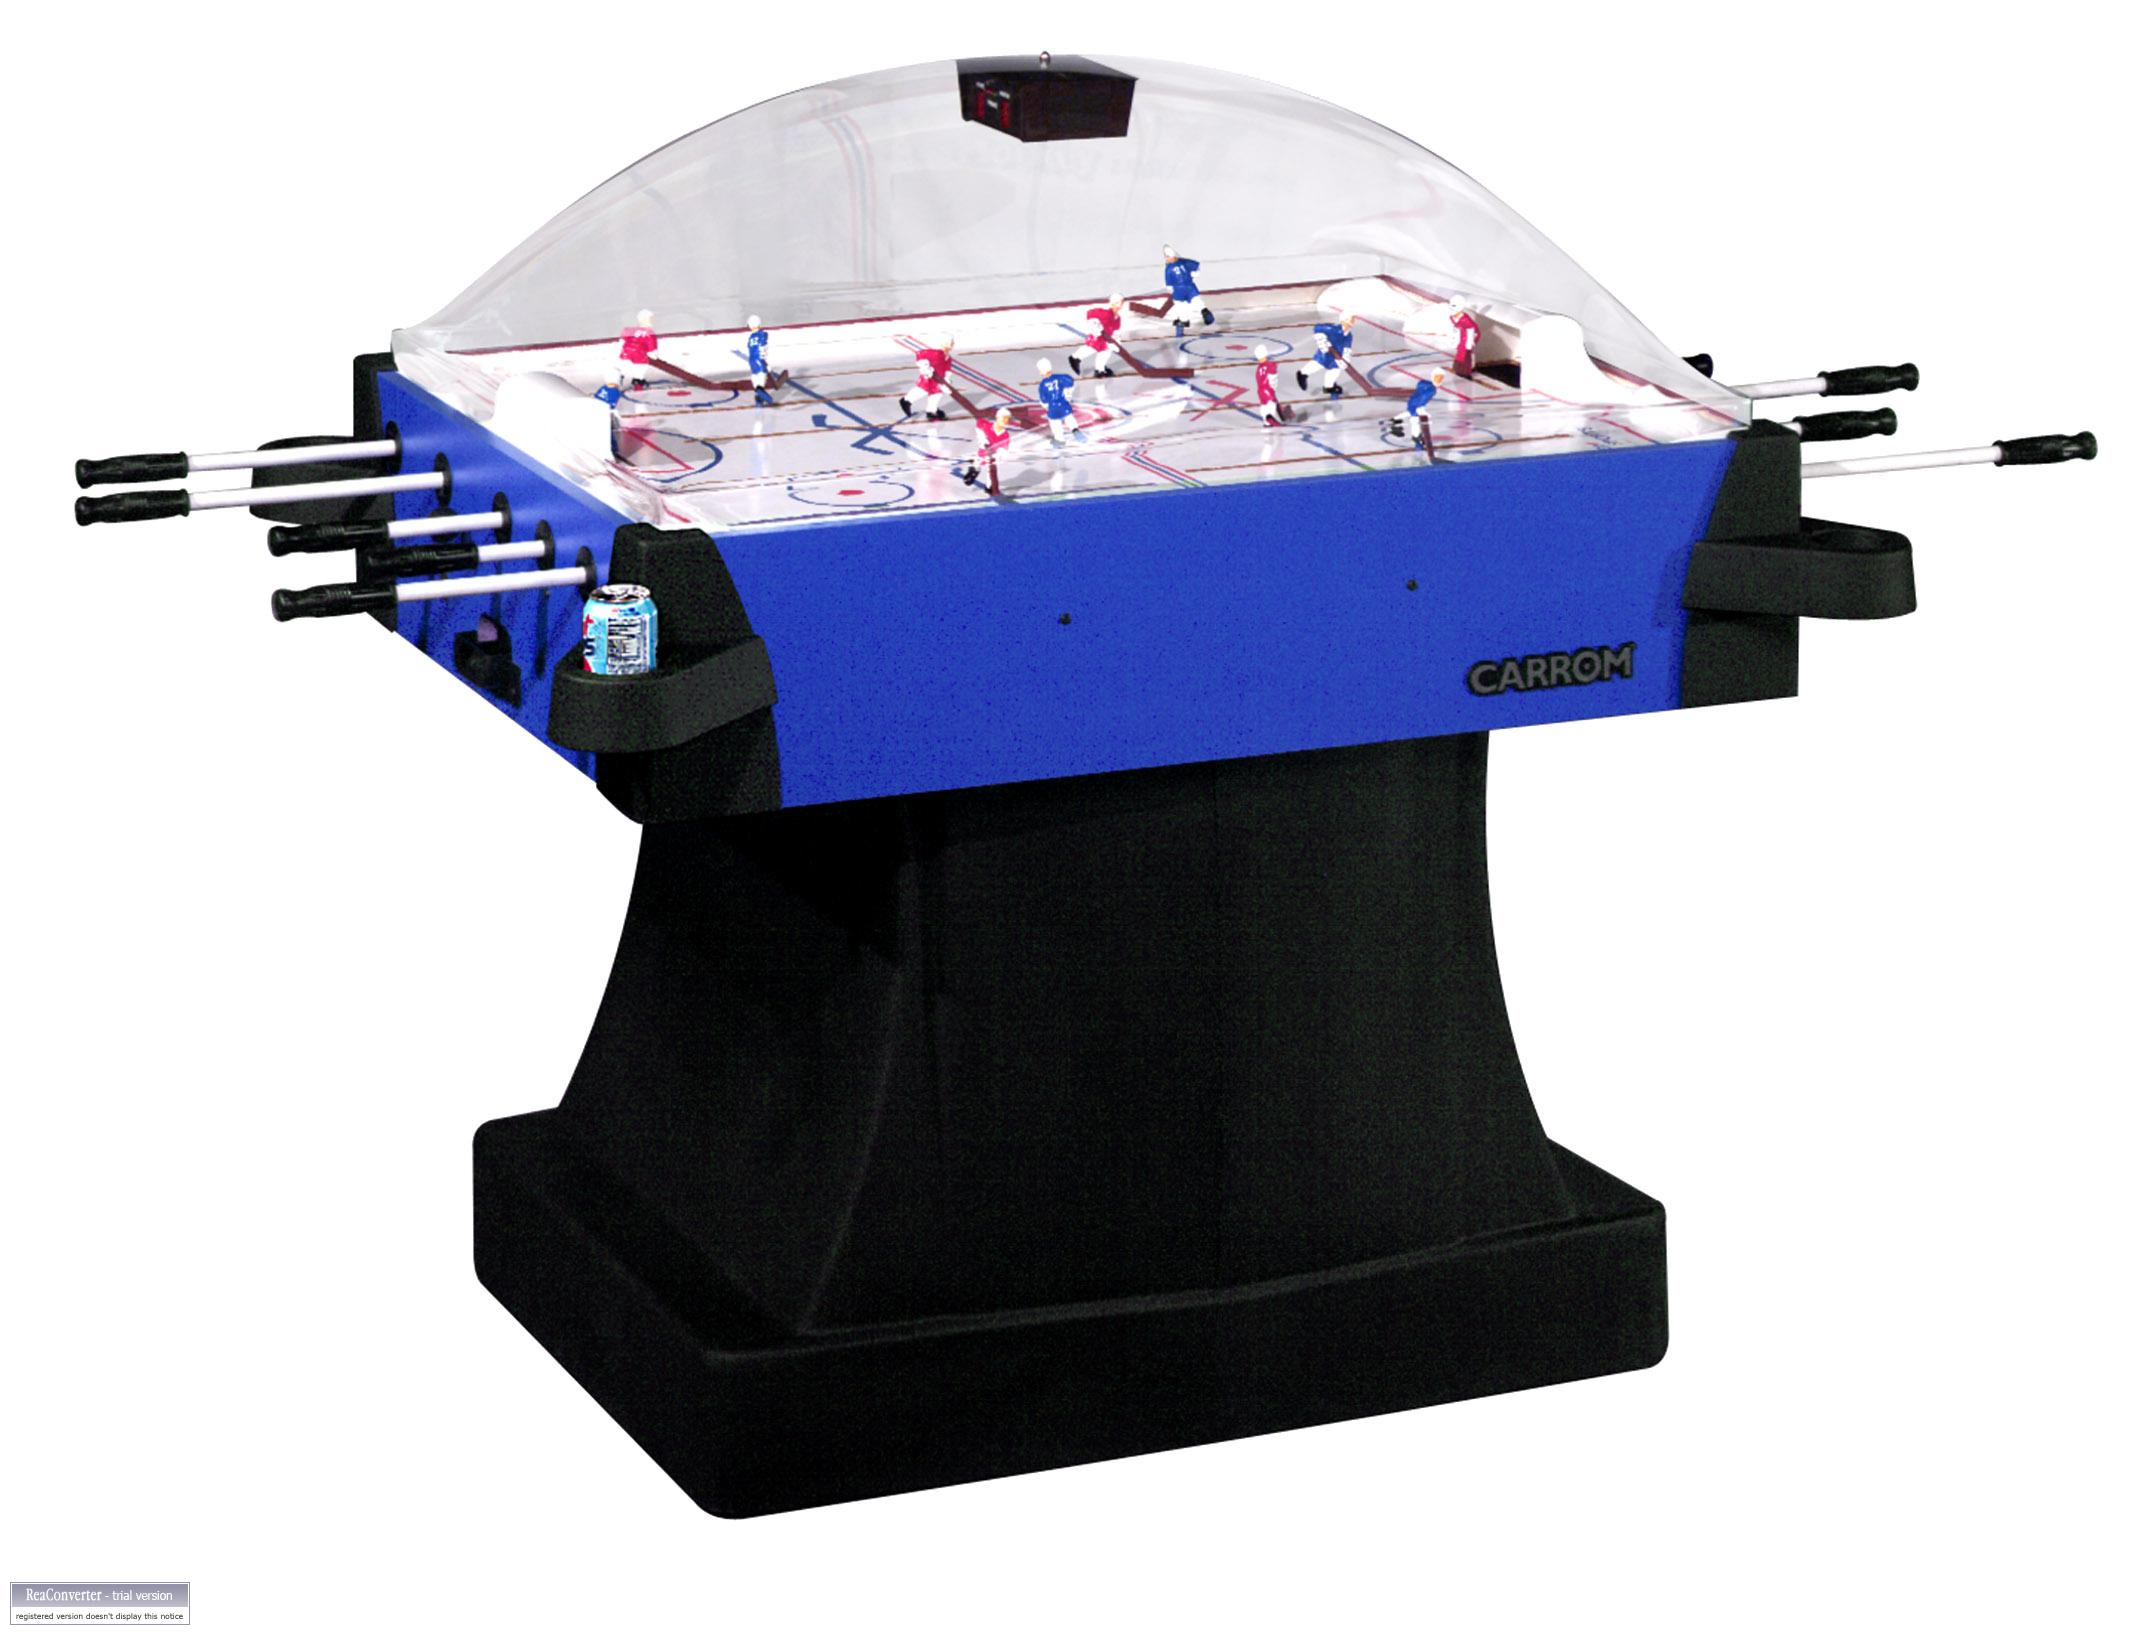 Carrom 425.01 435.01 Signature Stick Hockey Table with Pedestal